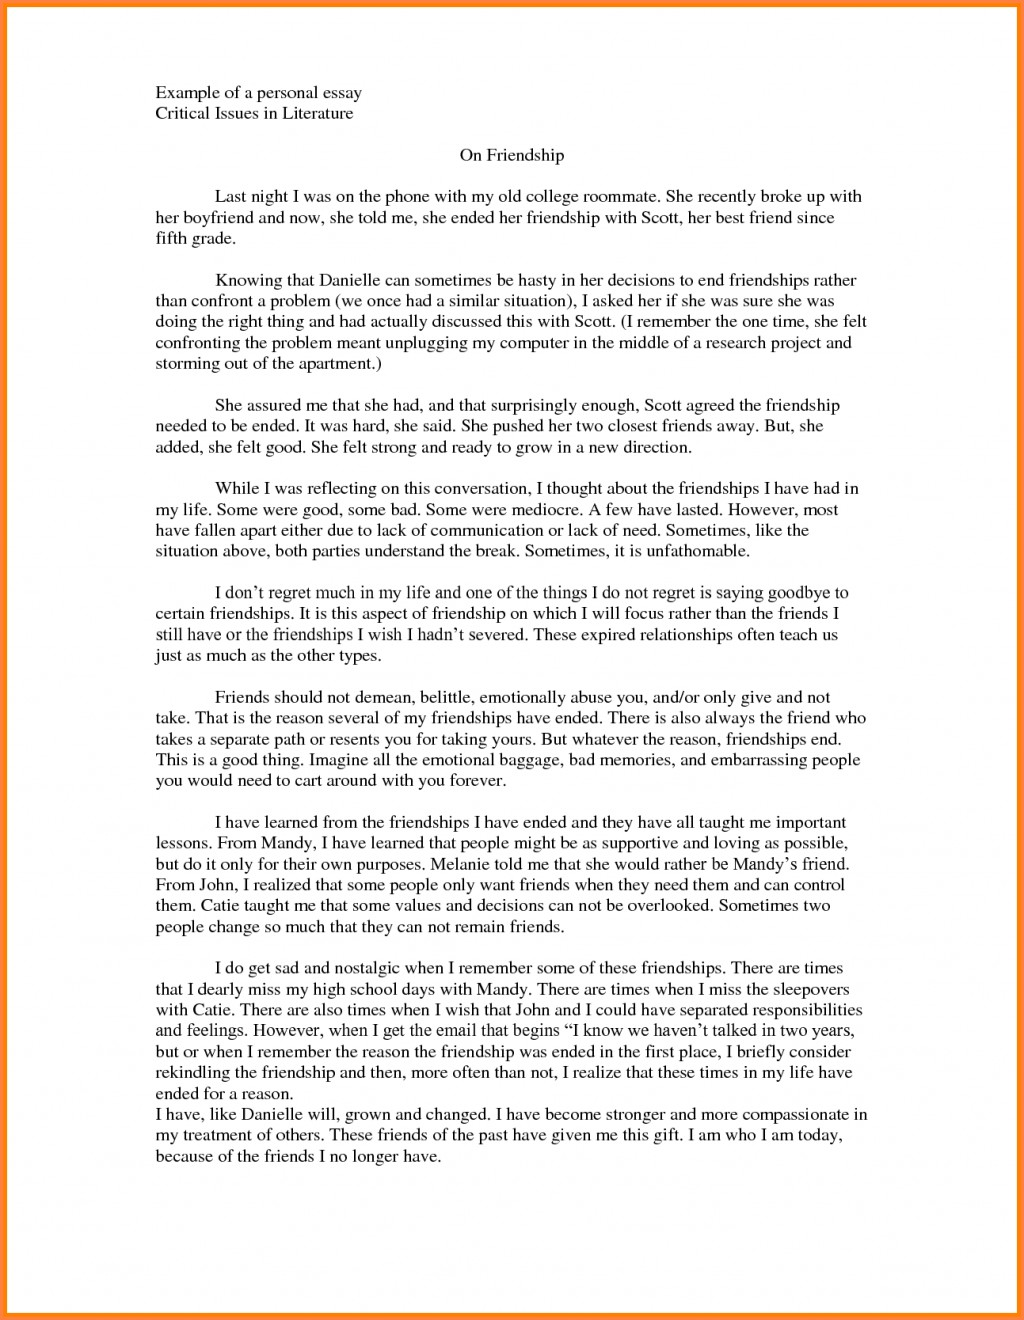 021 Essay Example College Prompt Service High School Biology Homework Help With Efective Successful Personal Statements Life Person L Stirring Samples Best Prompts 2017 Uc Large